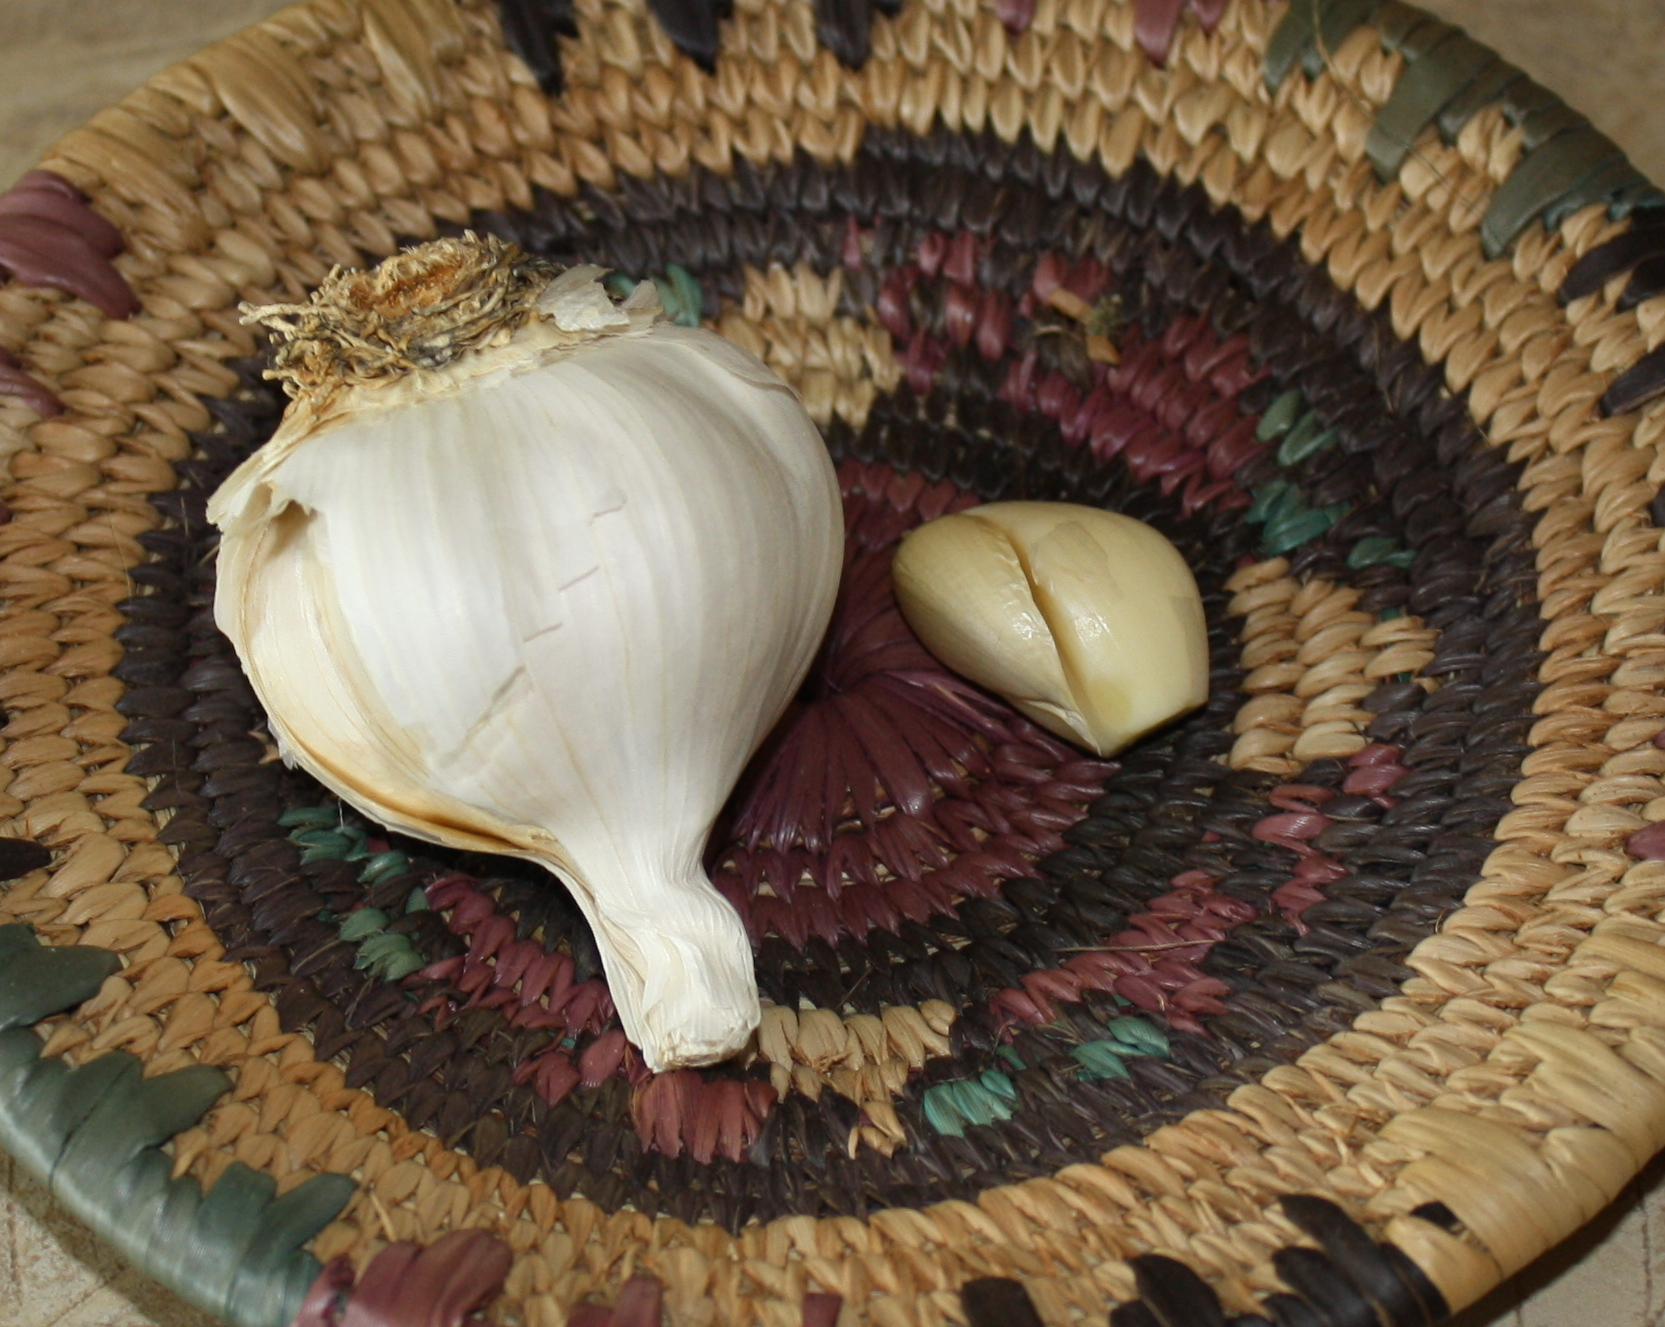 A basket containing a pod and clove of garlic. 4 cloves a day helps normalize cholesterol